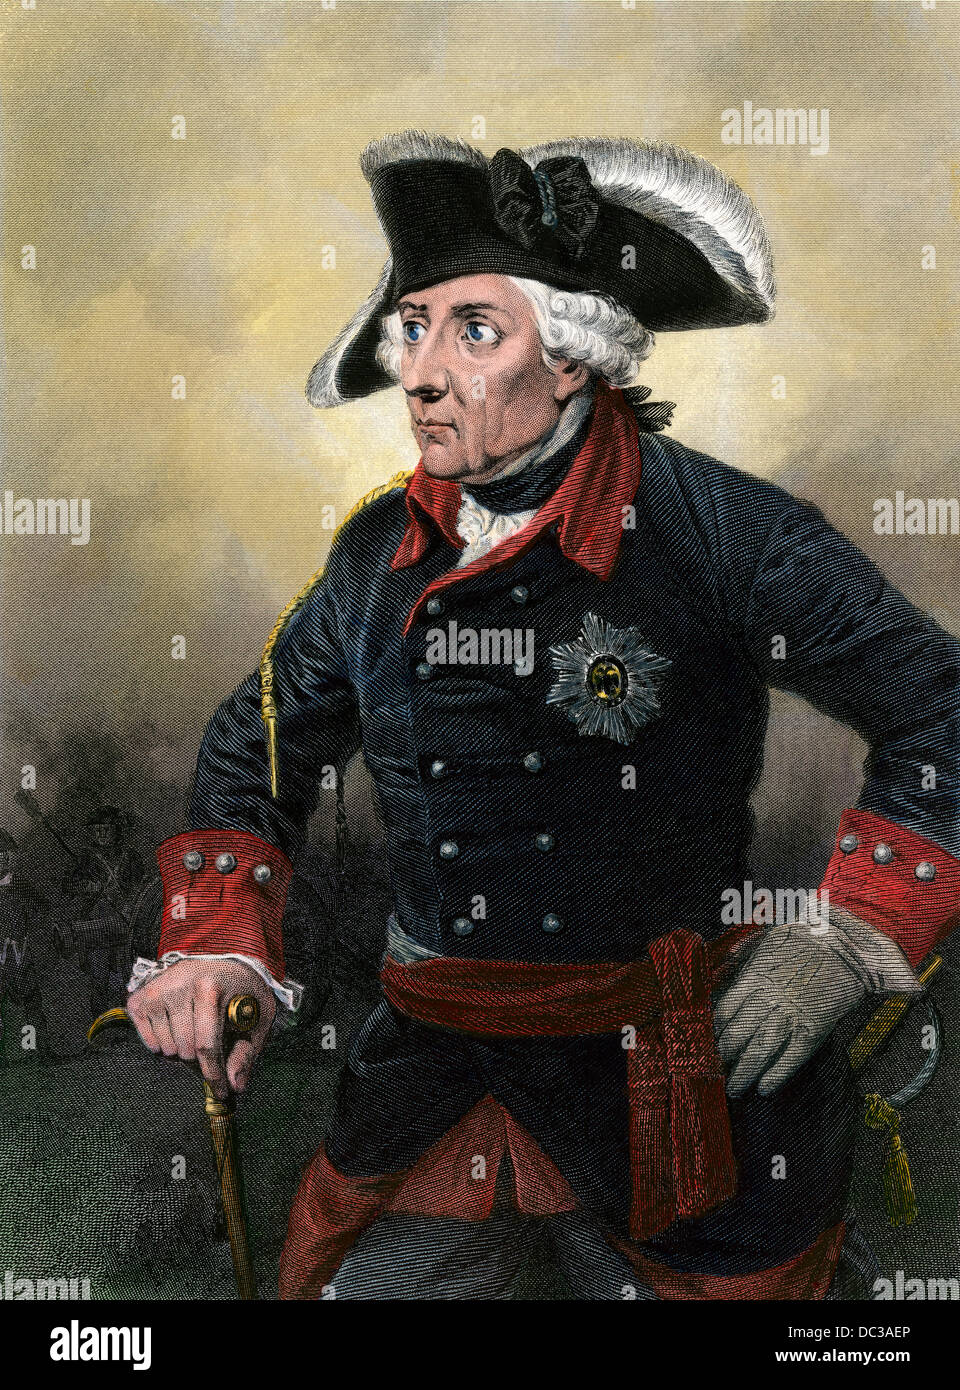 Emperor Frederick the Great of Prussia. Hand-colored steel engraving - Stock Image